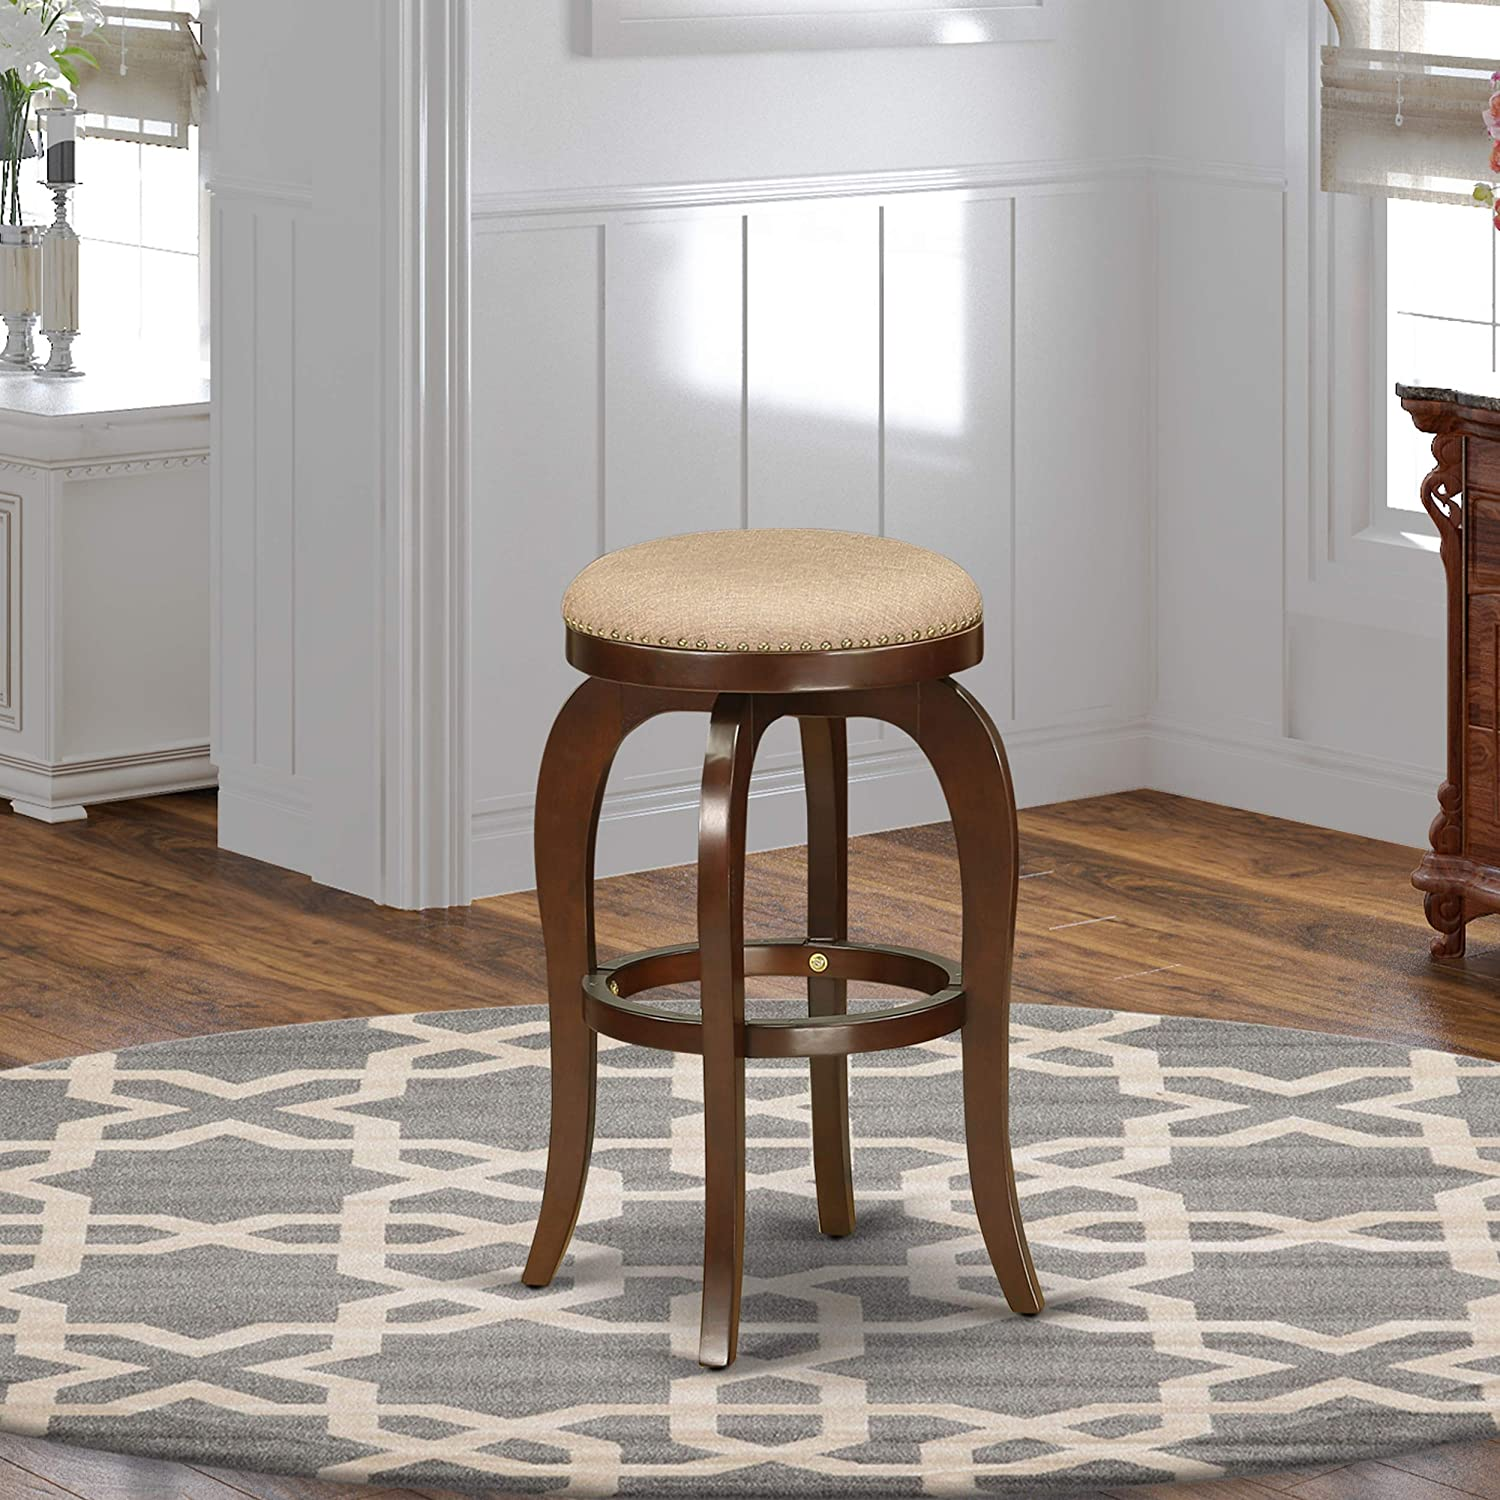 East West Furniture Bedford Swivel Backless Barstool 30'' Seat Height With Mahogany Leg And Pu Leather Mocha